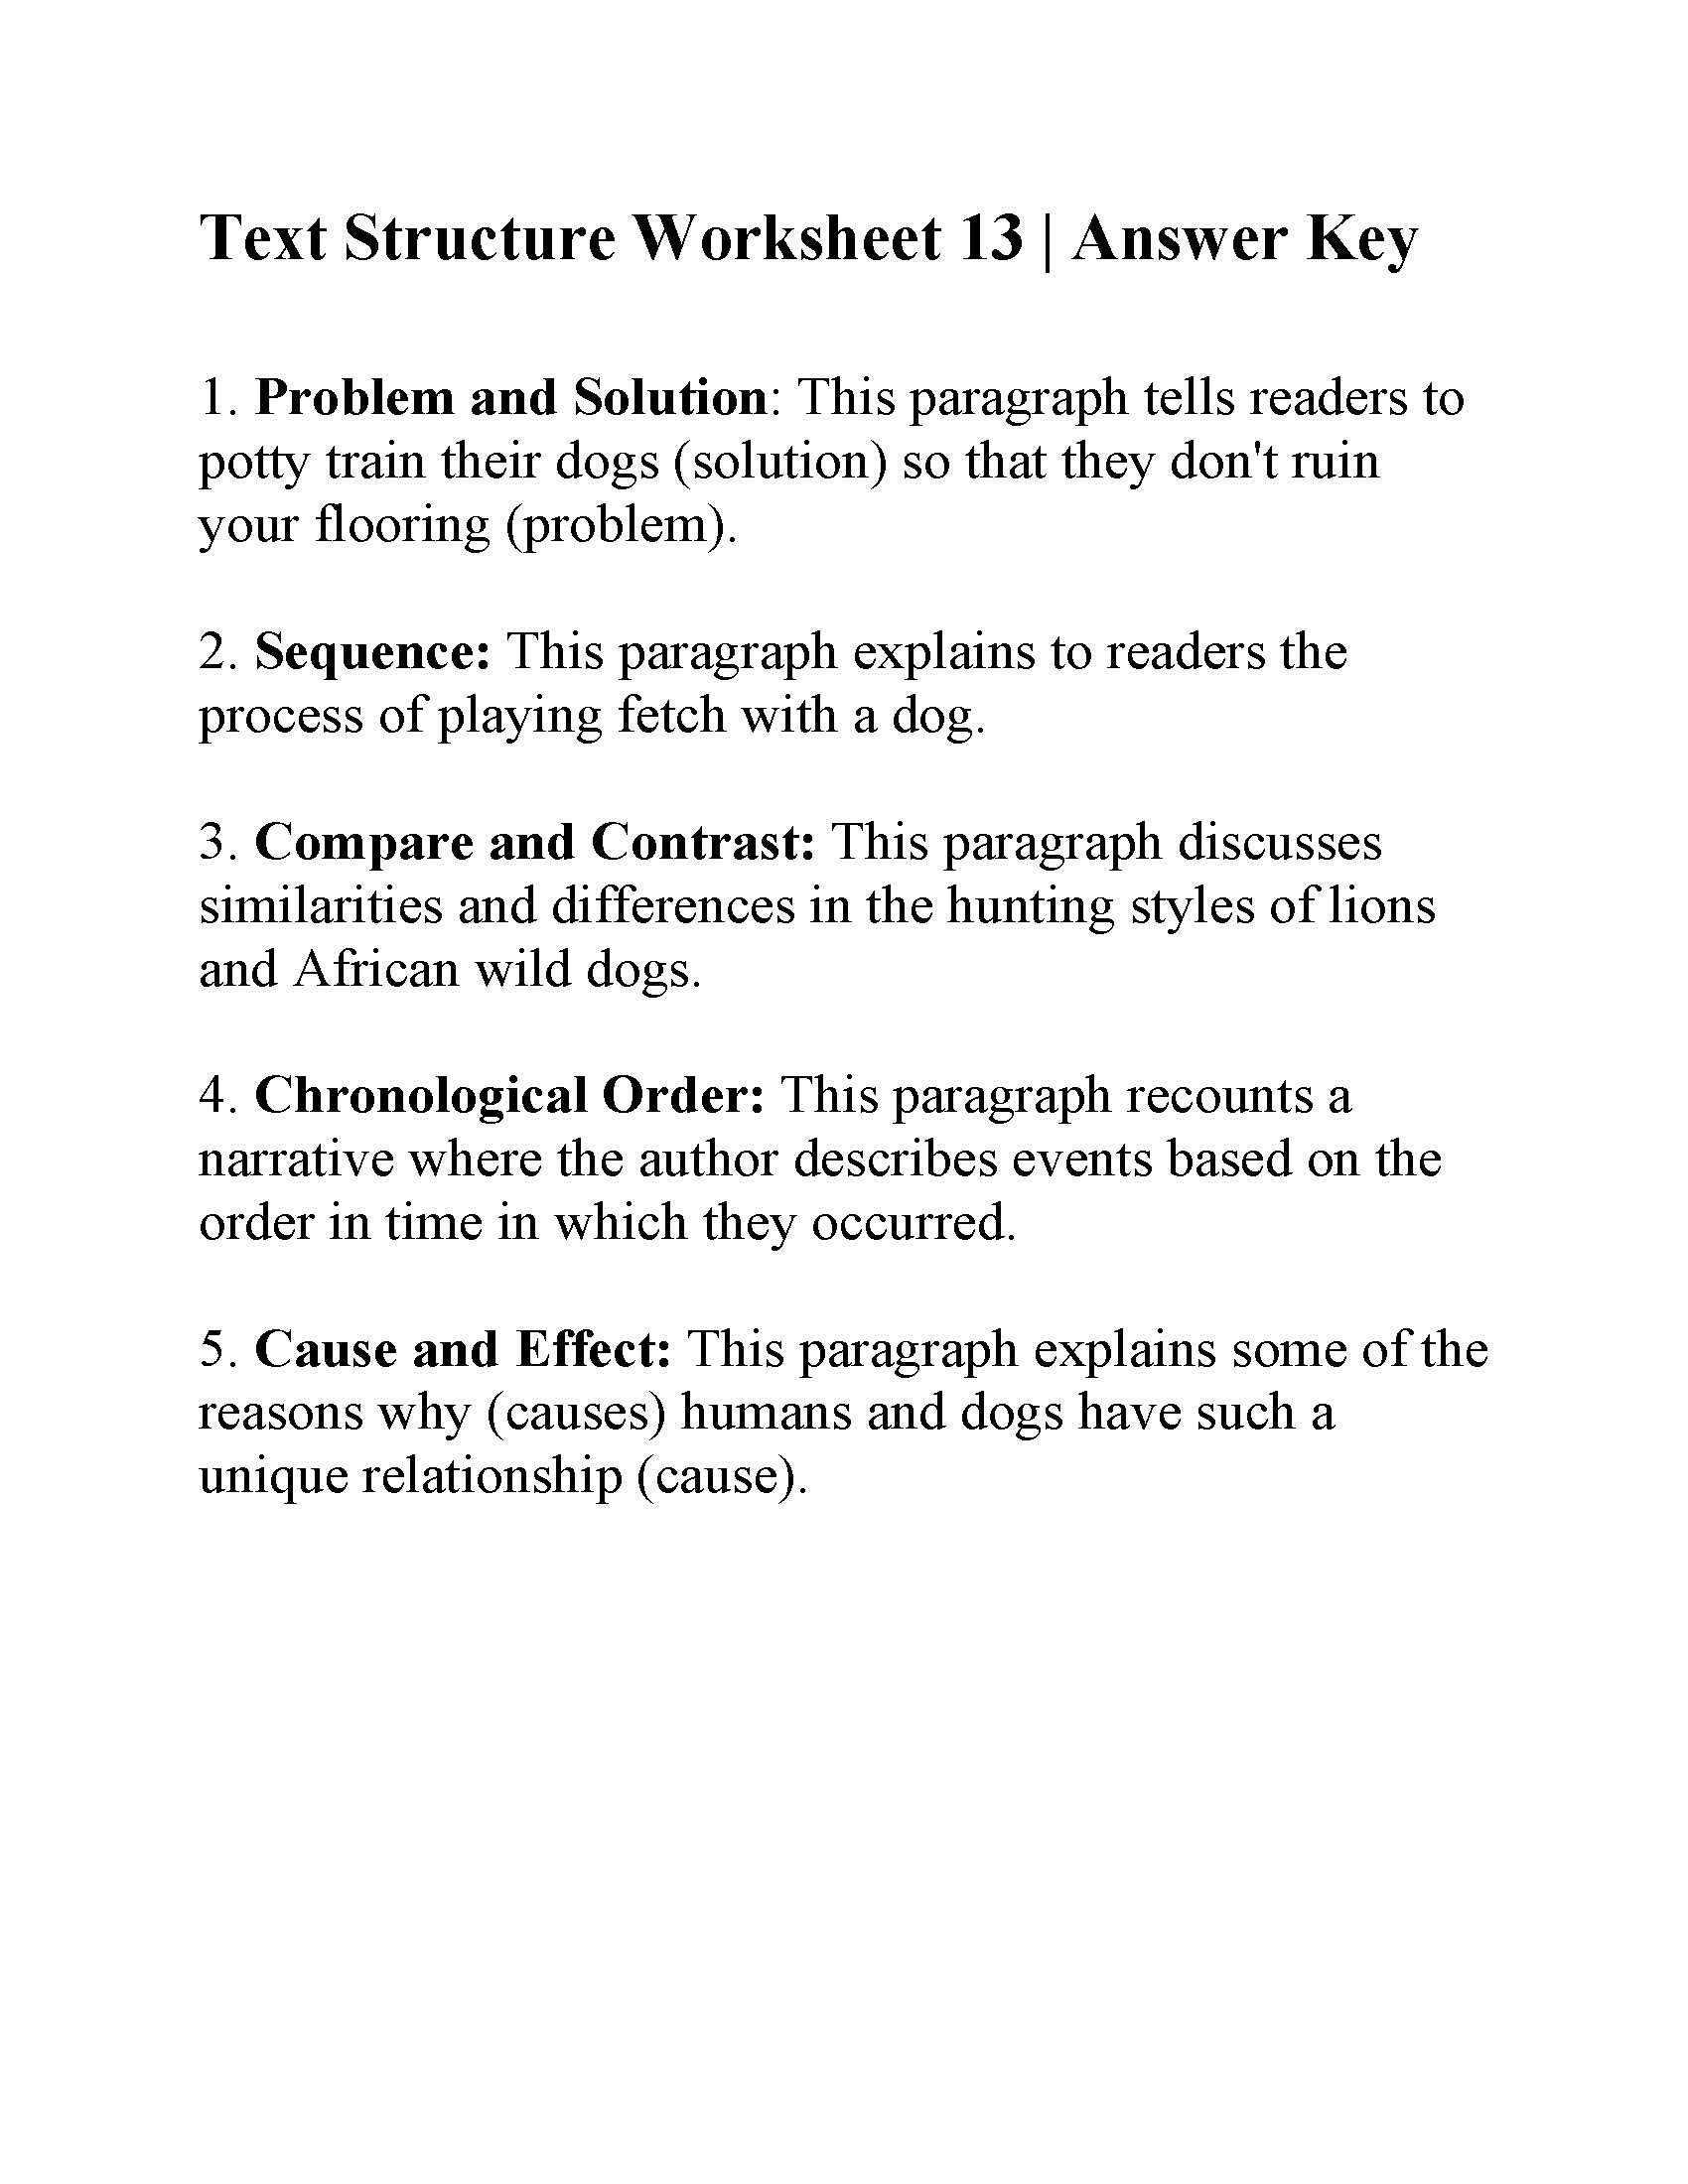 Text Structure Worksheets 4th Grade A Mathematical Equation Time for Kids Magazine Worksheets